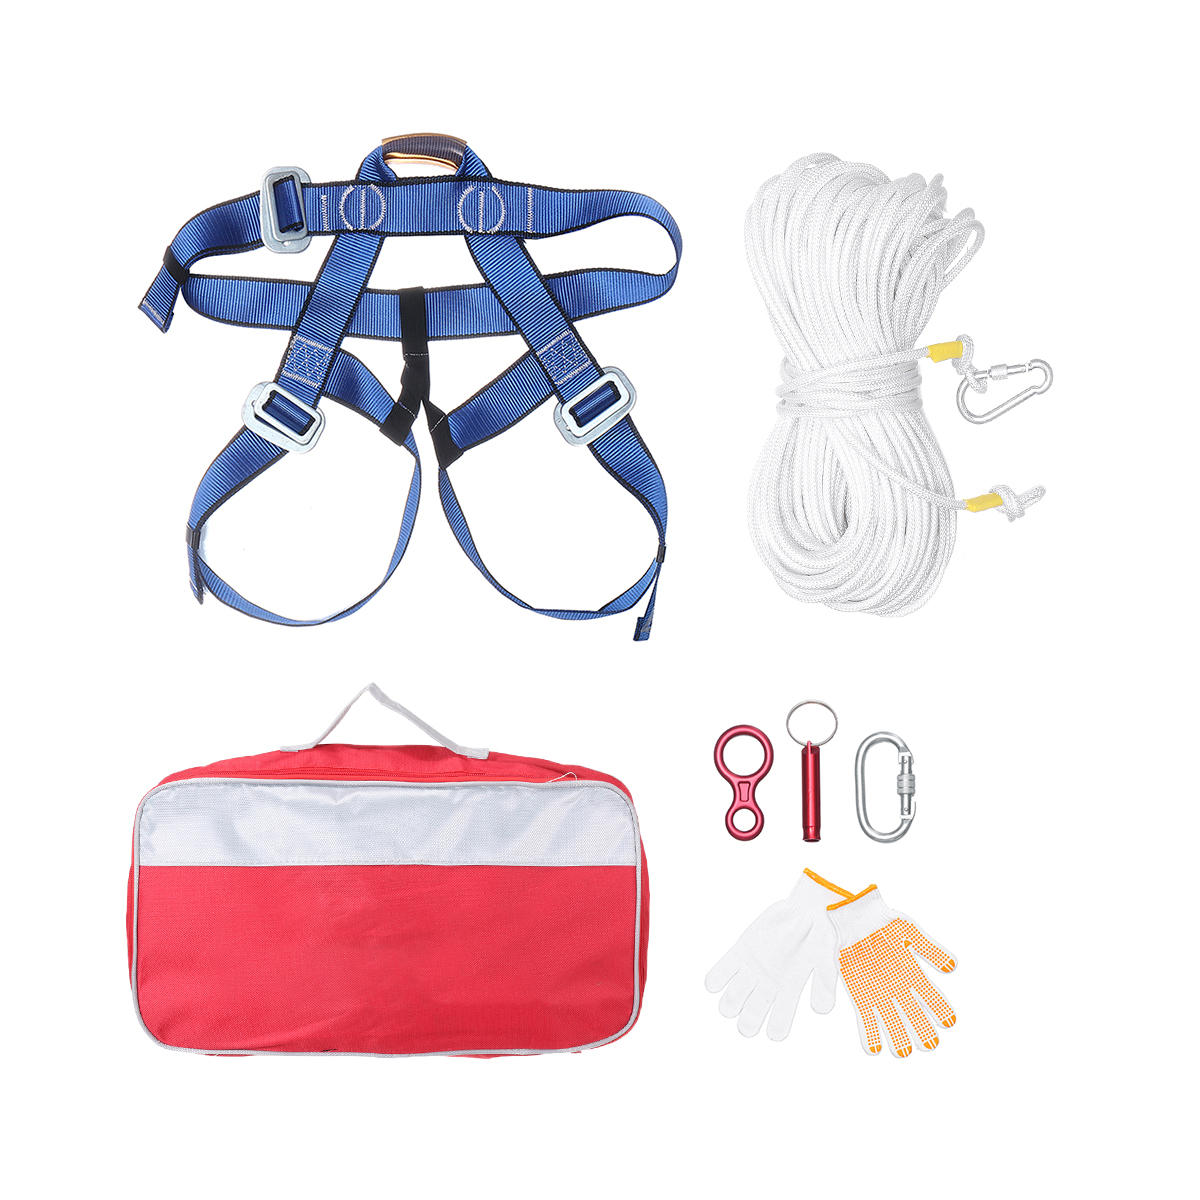 Adjustable Pro Body Safety Belt Harness Seat Climbing Protector 10M/30M/60M Rappelling Rope with Glove